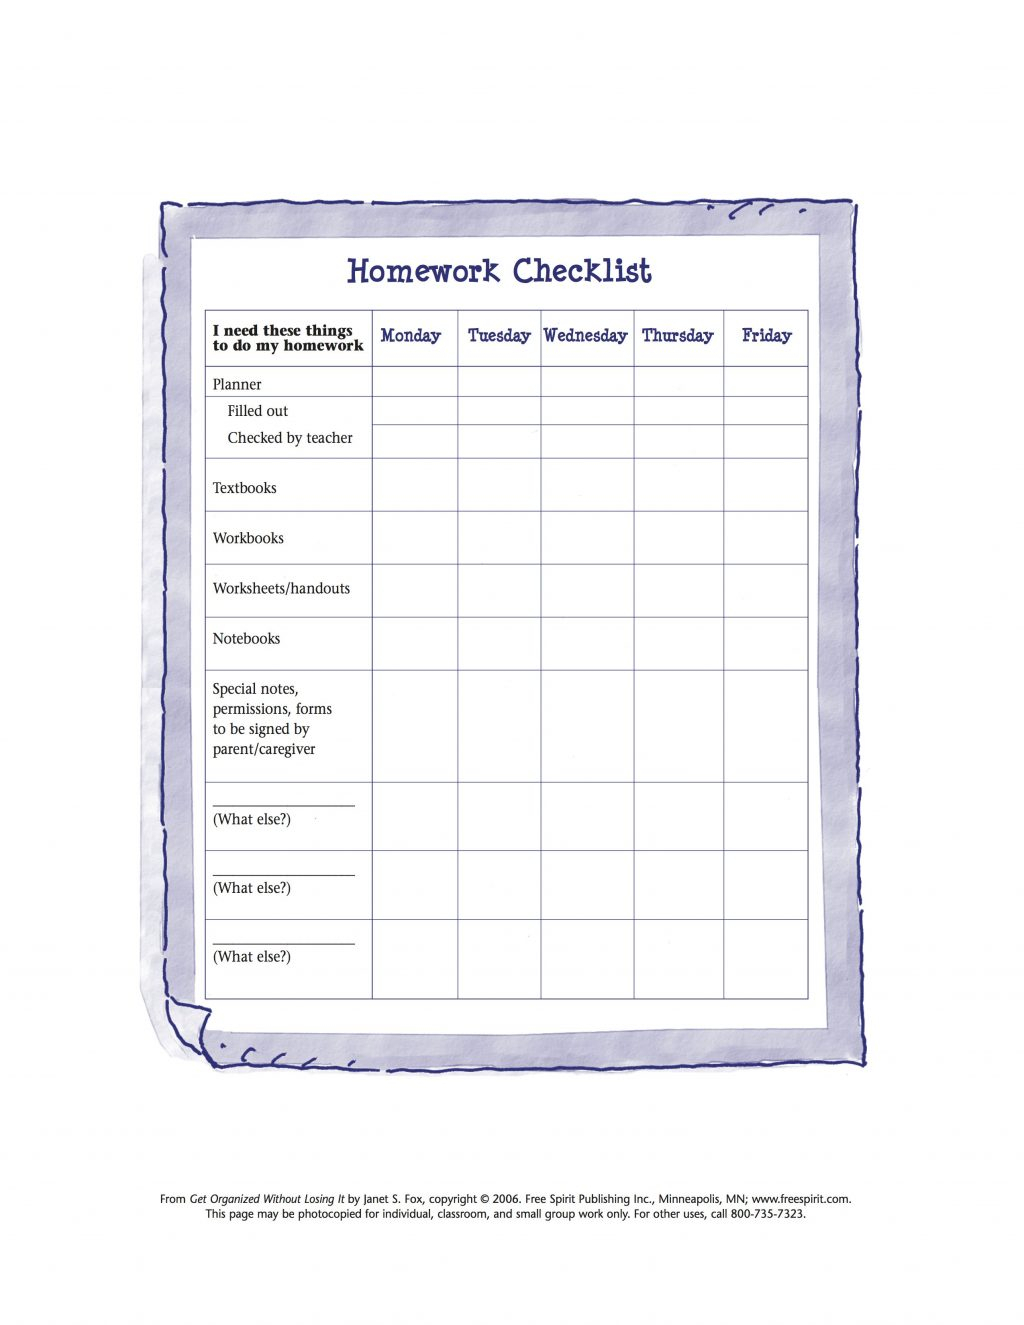 Daily Homework Checklist Template Printable Weekly For Teachers Pdf with Large Printable Daily Schedule Template